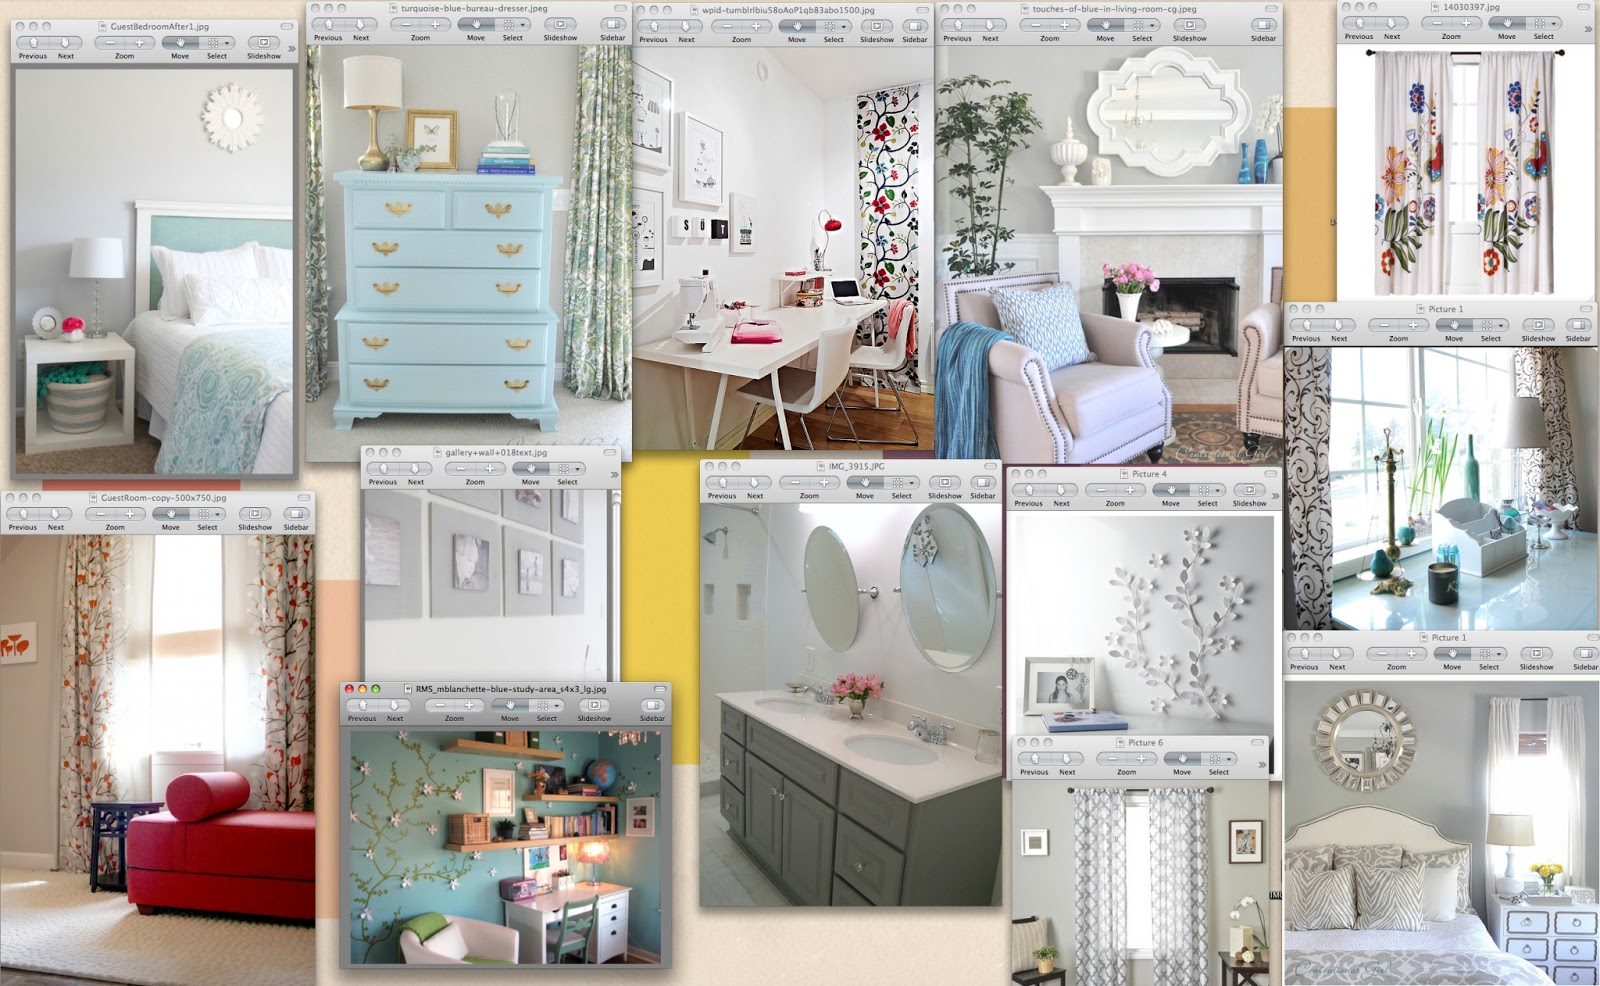 most of my images tended to look similar in style so I decided to just  follow my instinct and use them as inspiration for my bedroom makeover. Master bedroom makeover on a budget   wee design group